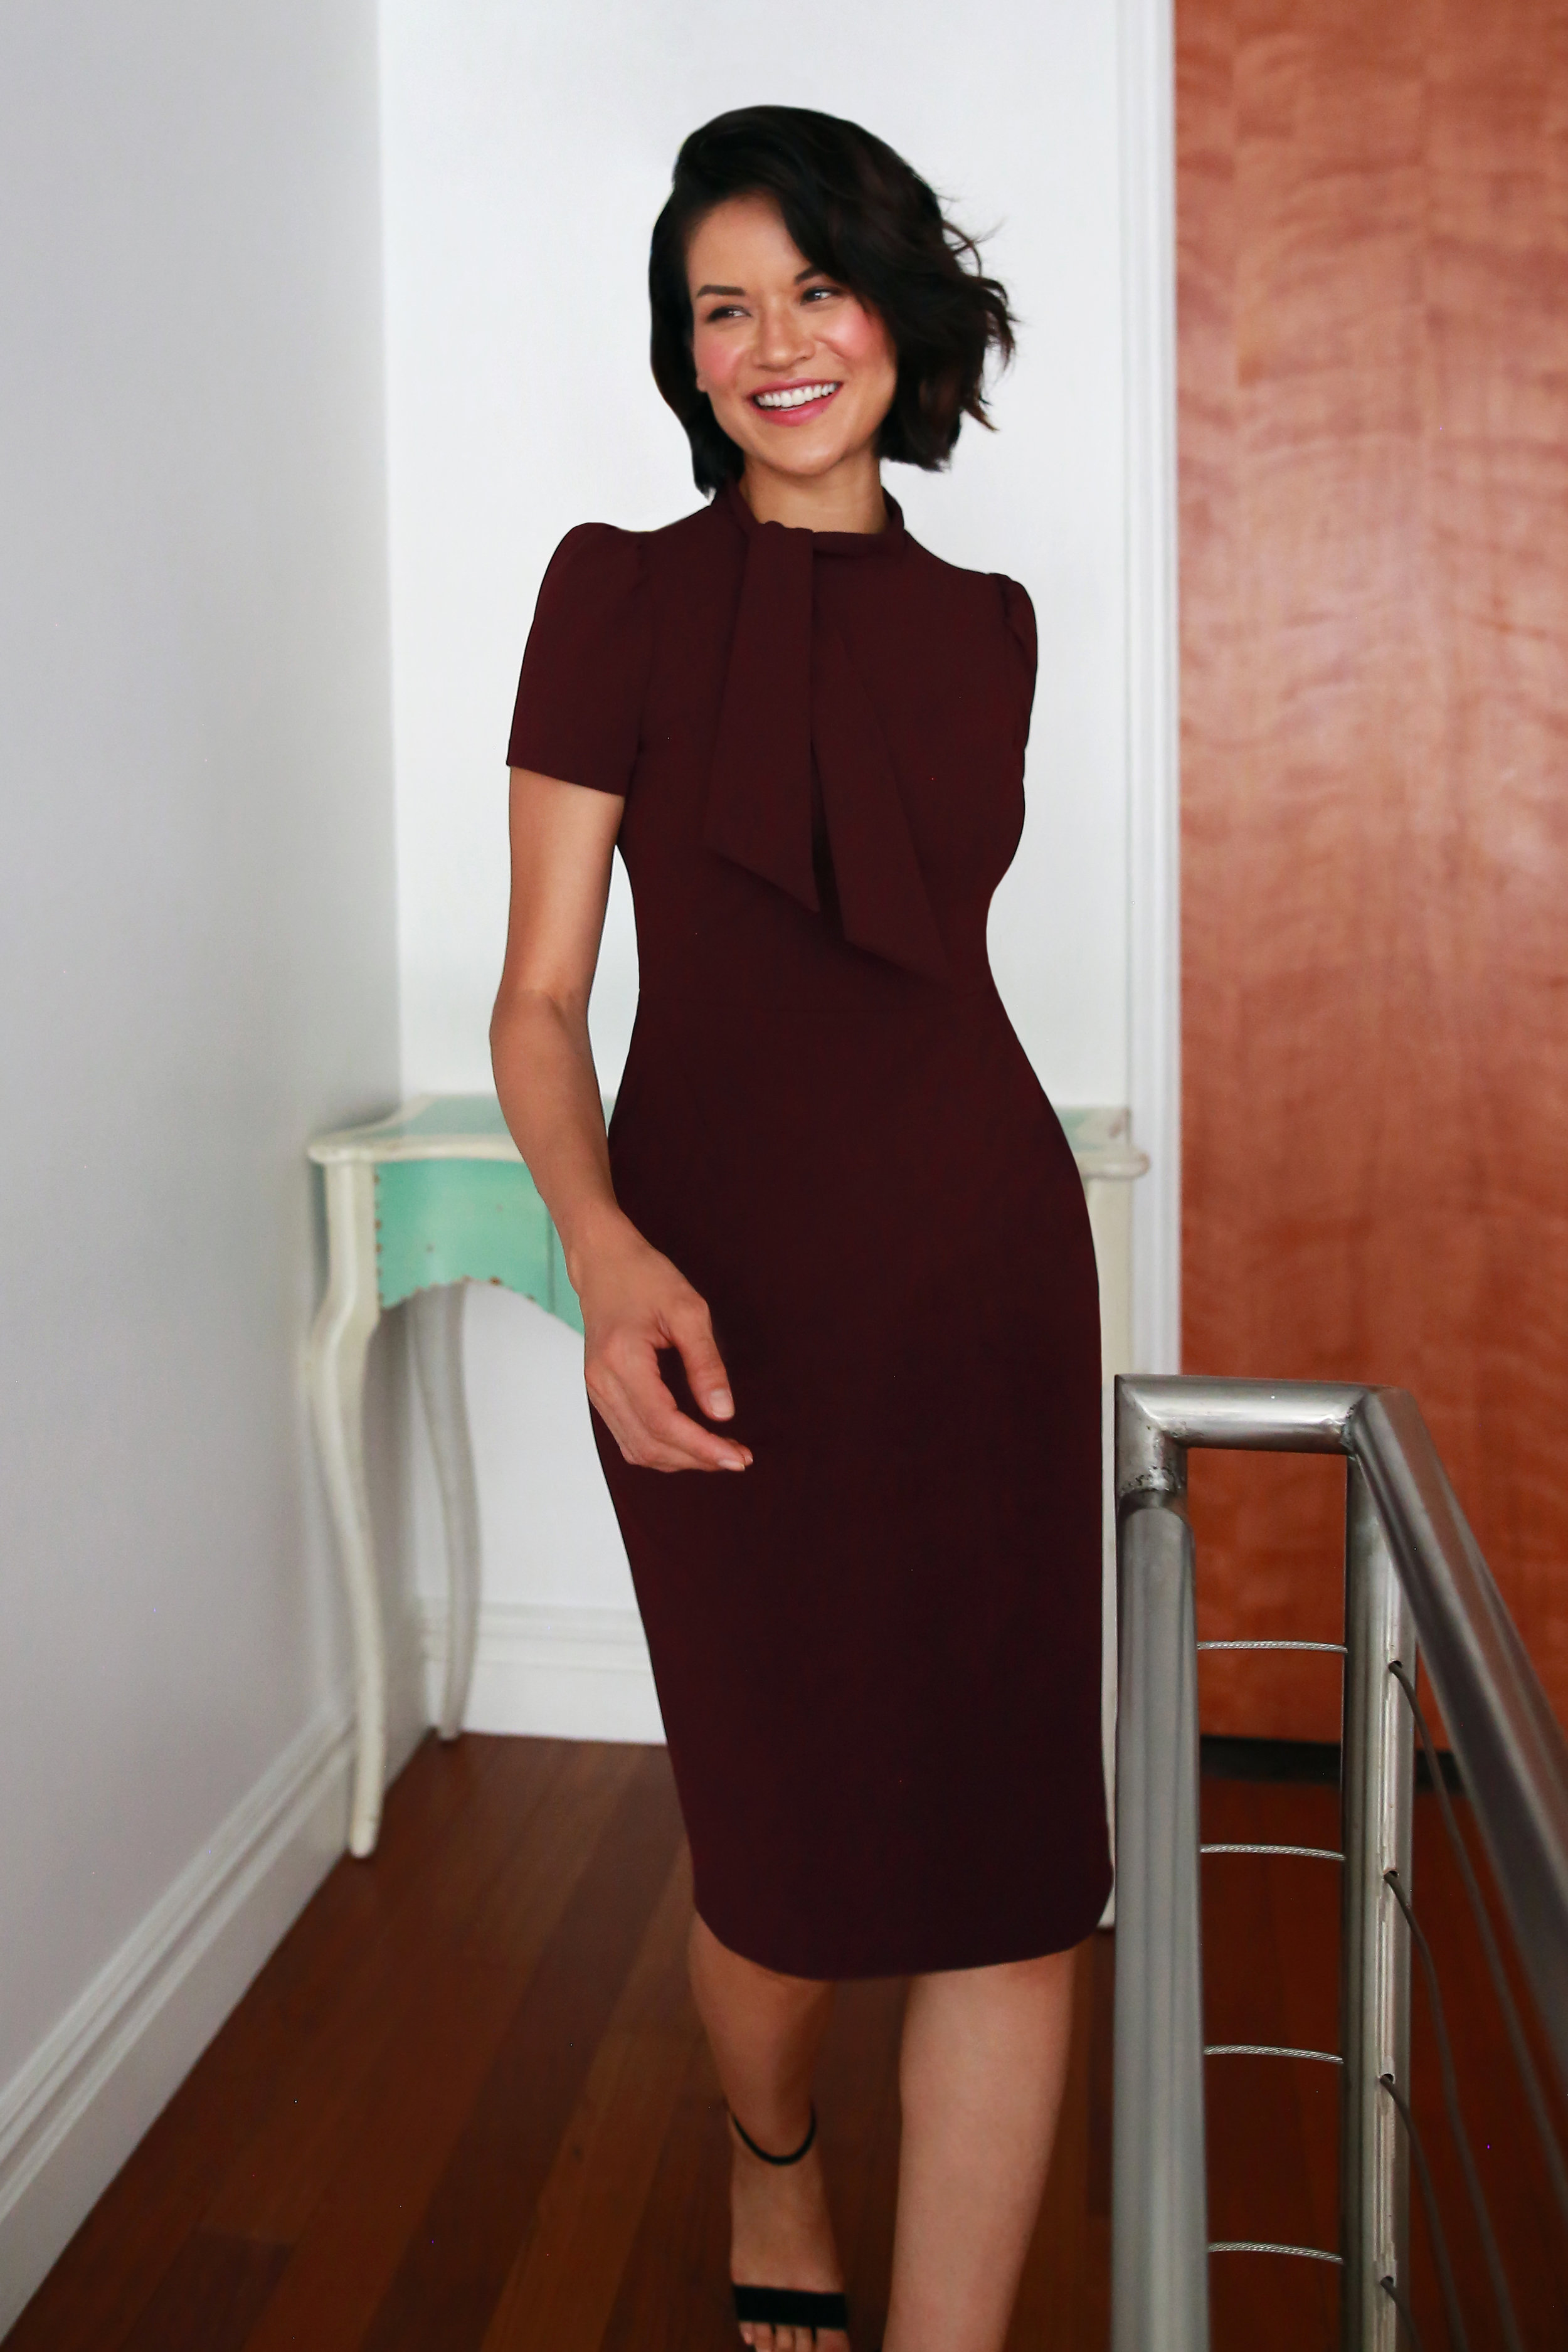 The Margo Dress in Wine - Rich wine red will forever be our weakness, and with this to-die-for neckline detailing, we couldn't wait to brag about this one!